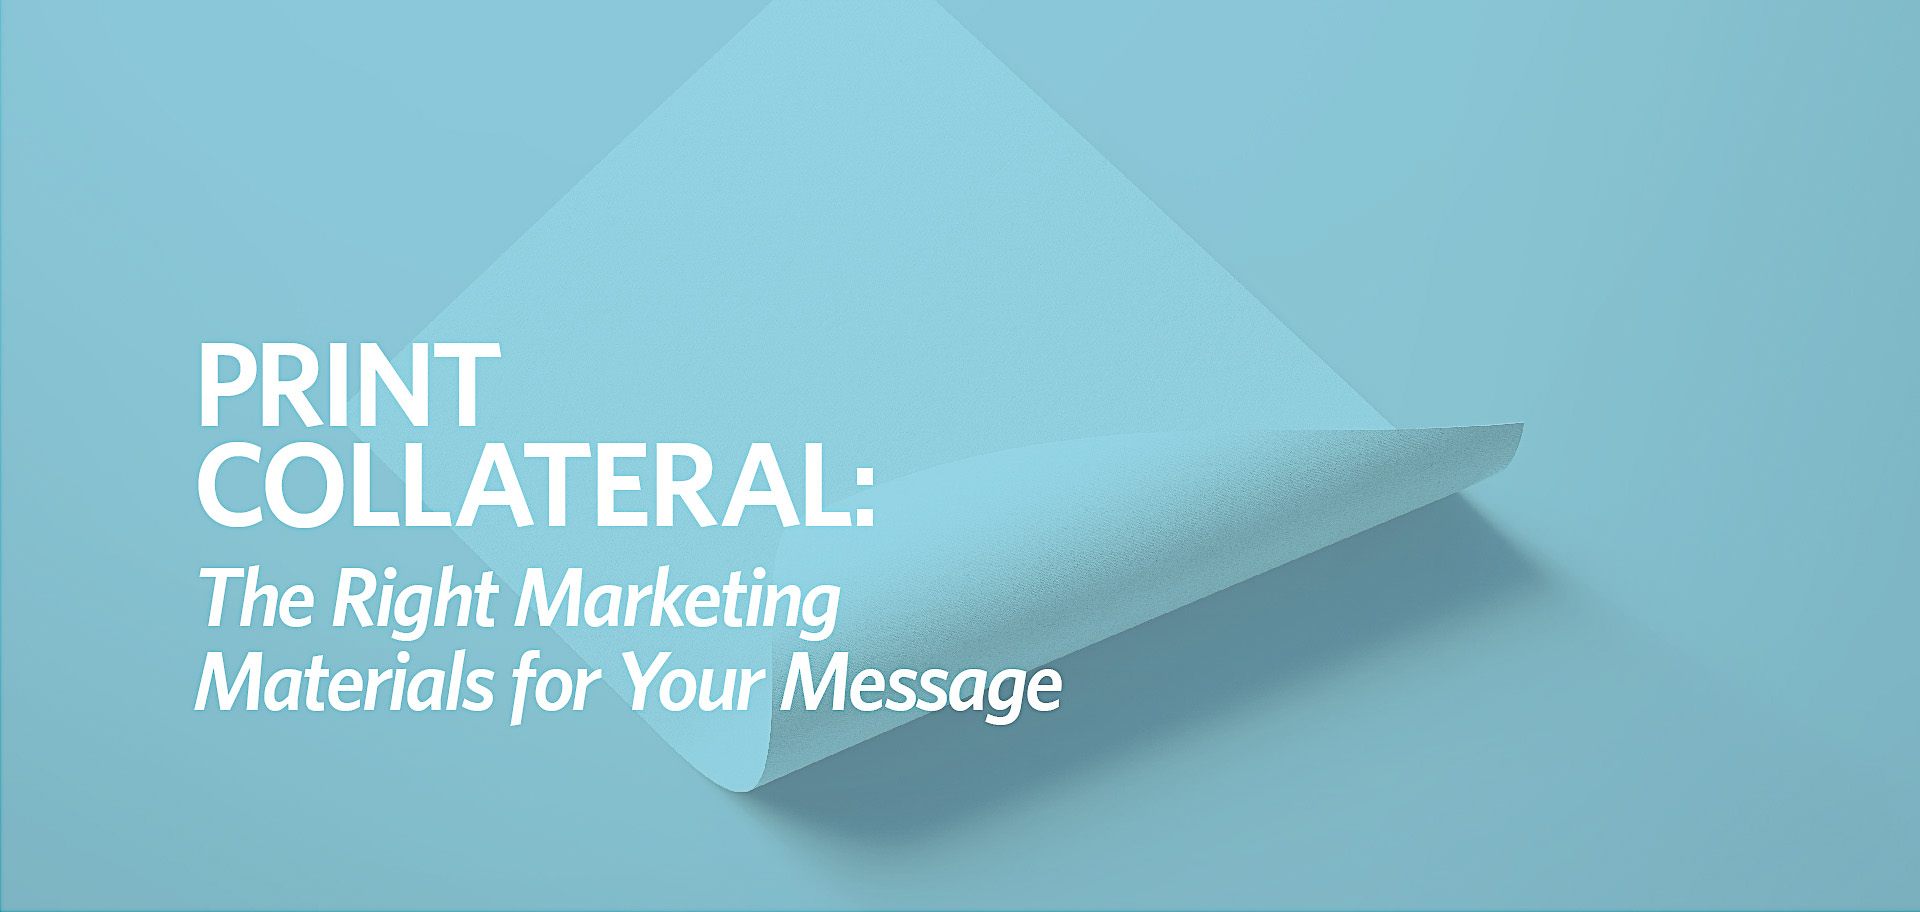 Print Collateral guide, Kettle Fire Creative blog, best use of marketing materials, flyer, brochure, poster, banner print collateral Print Collateral: The Right Marketing Materials for Your Message fi